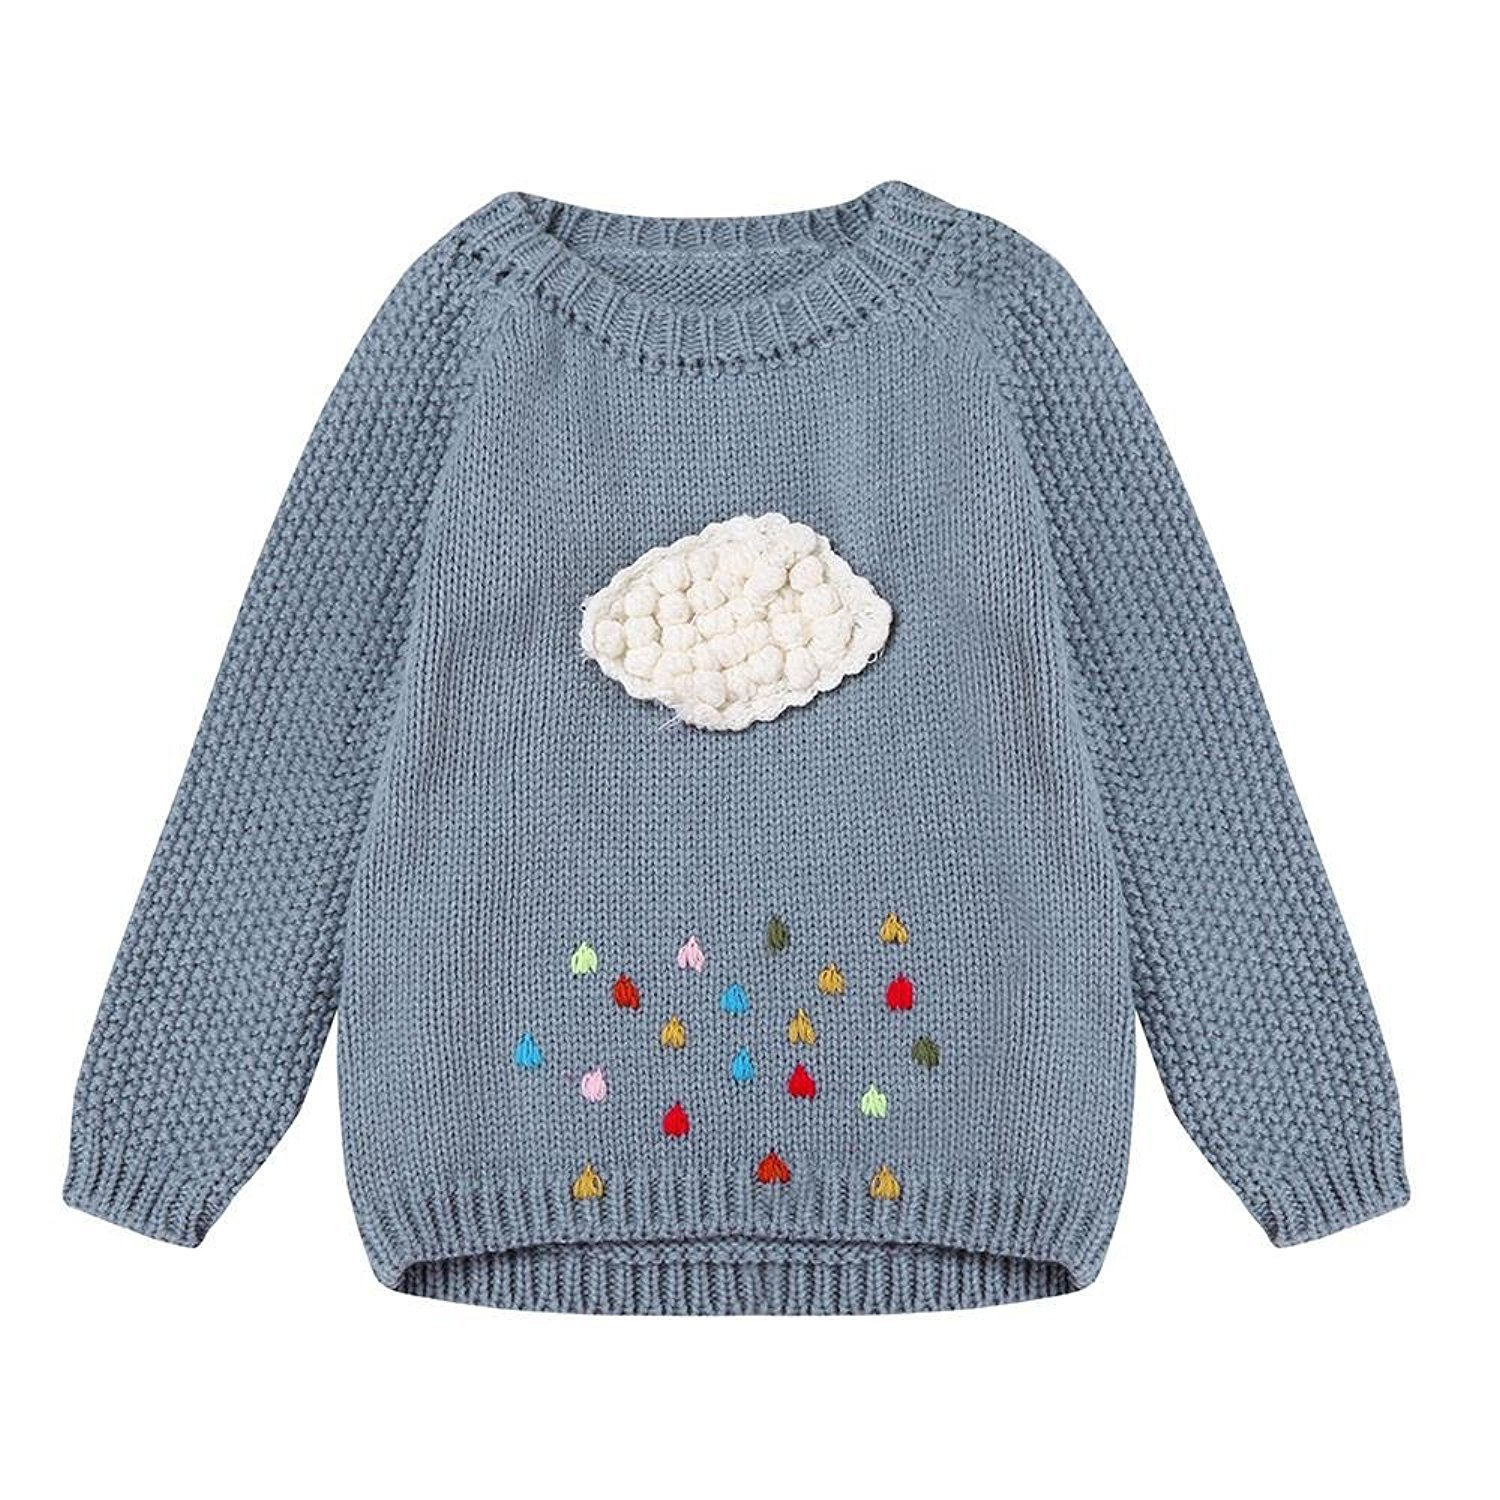 Kingko® Toddler Girls Kids Long Sleeves Sweater Tops Casual Warm Pullover Blouse Fluffy Sweater 3-7 Years KINH-321